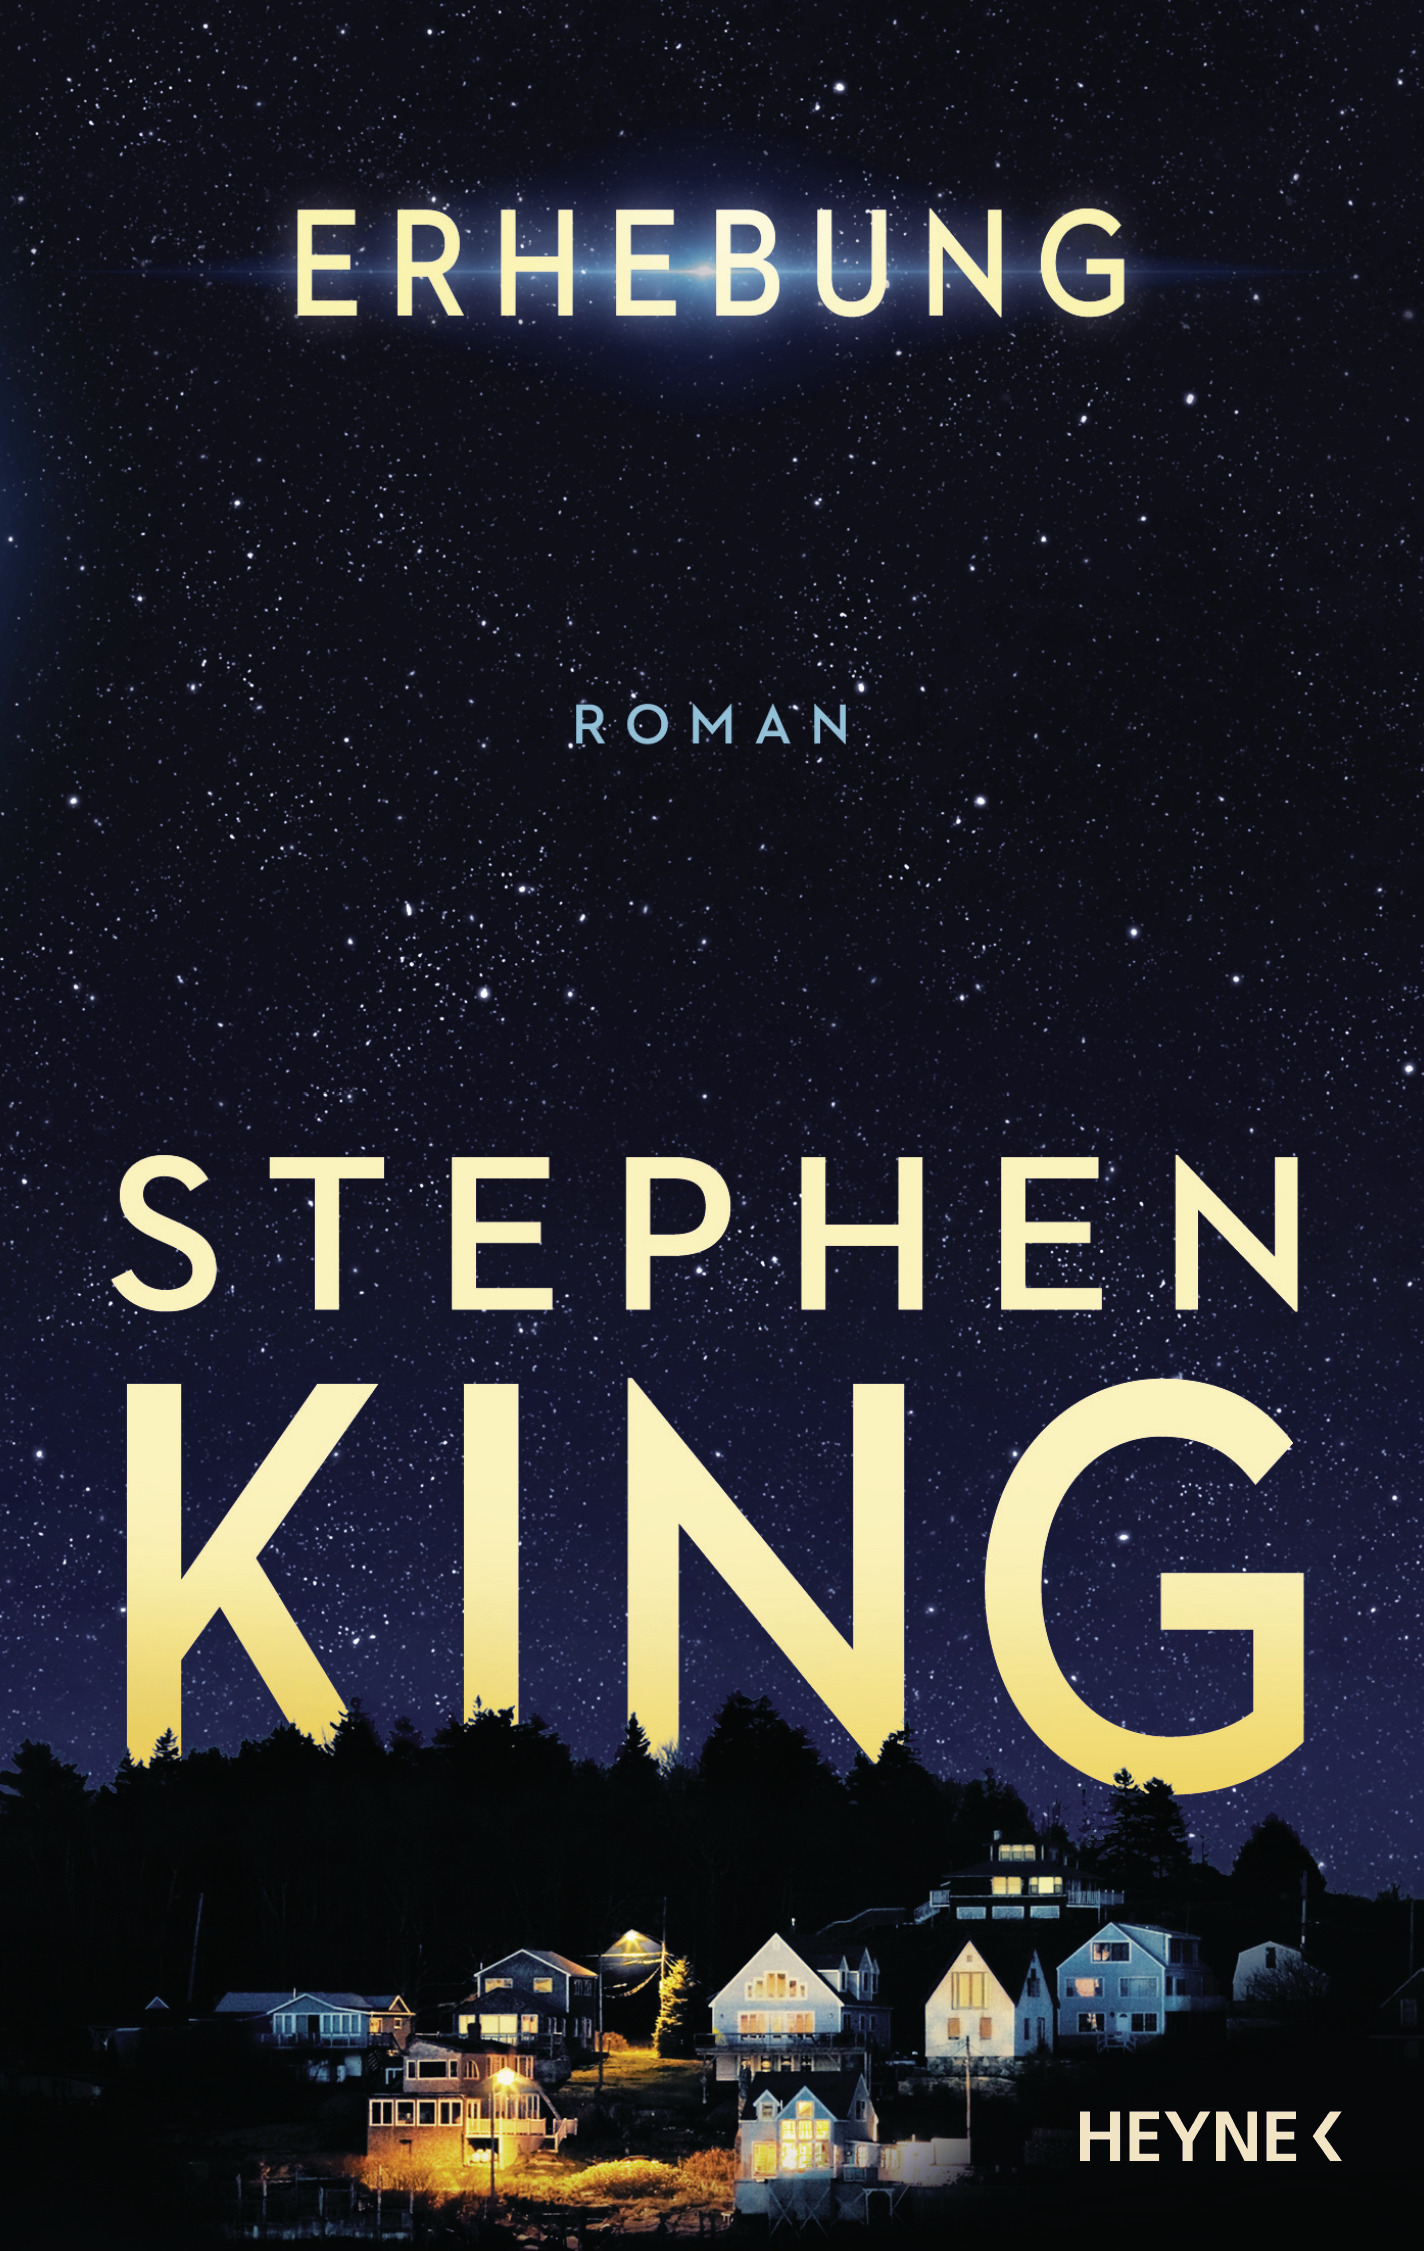 https://www.randomhouse.de/content/edition/covervoila_hires/King_SErhebung_194071.jpg